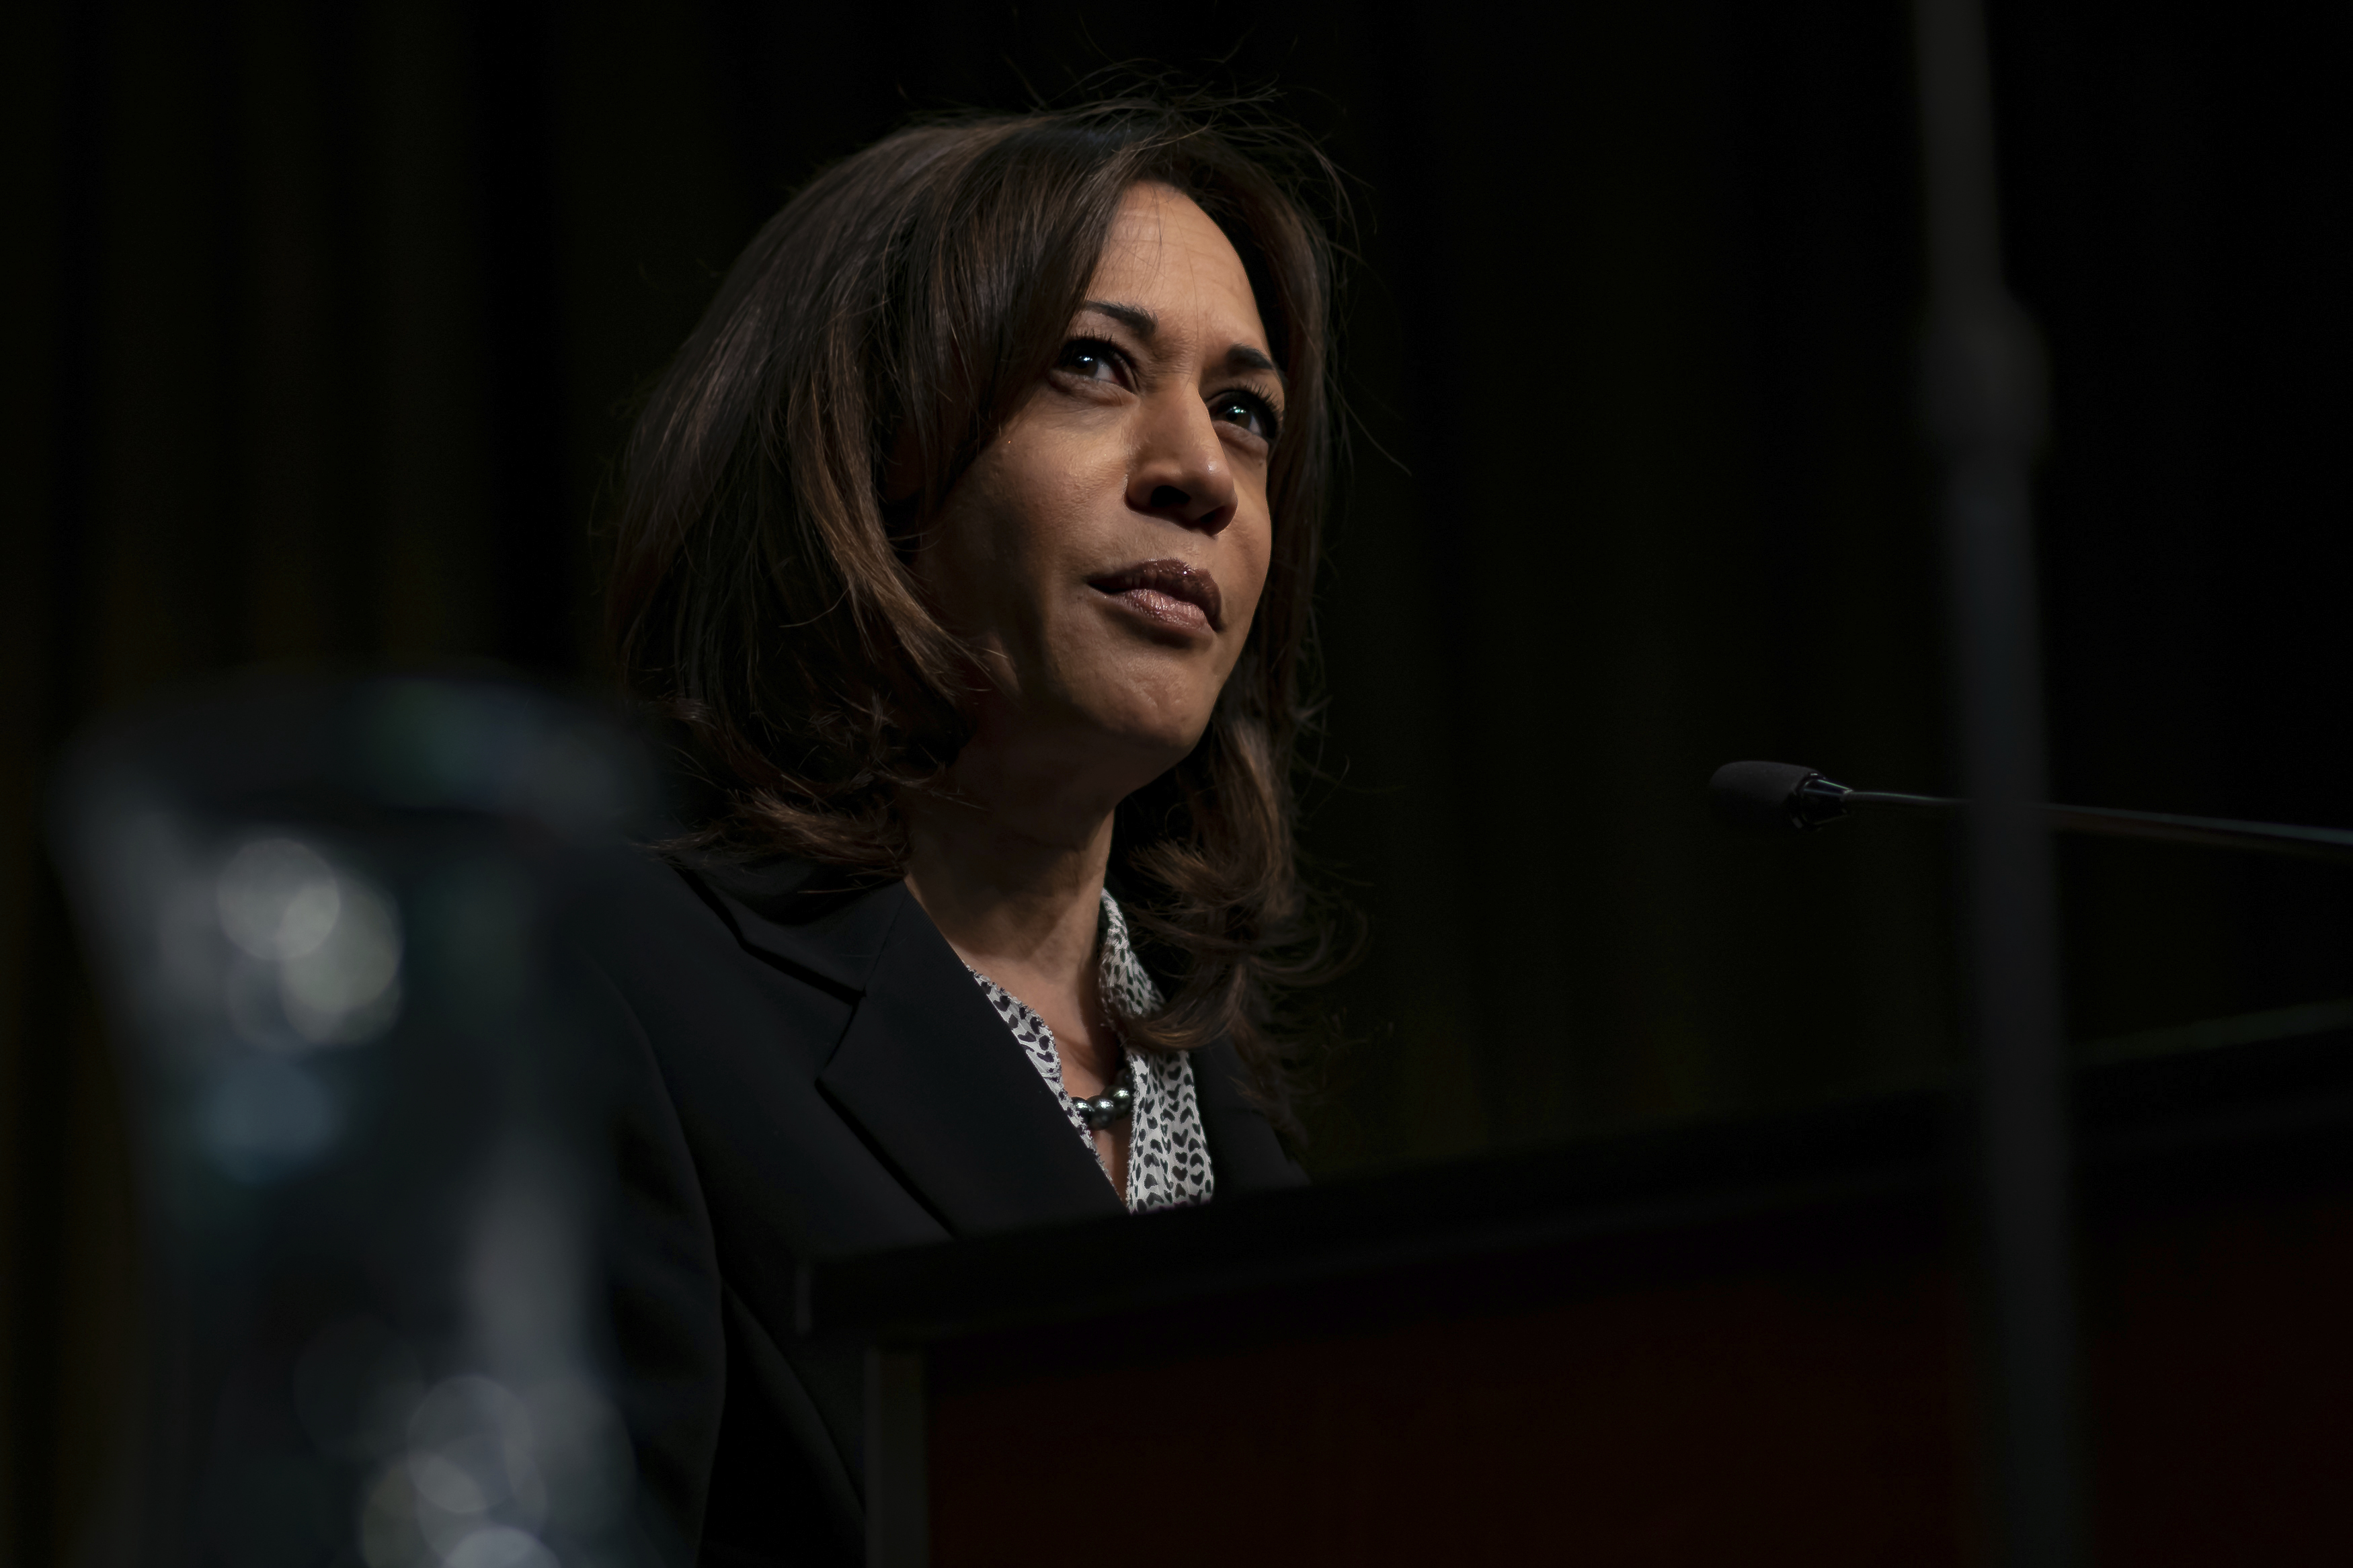 Democratic presidential candidate Kamala Harris speaks at the third day of the National Action Network's 26th national convention in New York City on April 5, 2019. The convention featured speeches and panel discussions around issues such as voting rights, criminal justice reform, immigration, health care, education, corporate responsibility, and economic equity. (Photo by Michael Nigro/Sipa USA)(Sipa via AP Images)